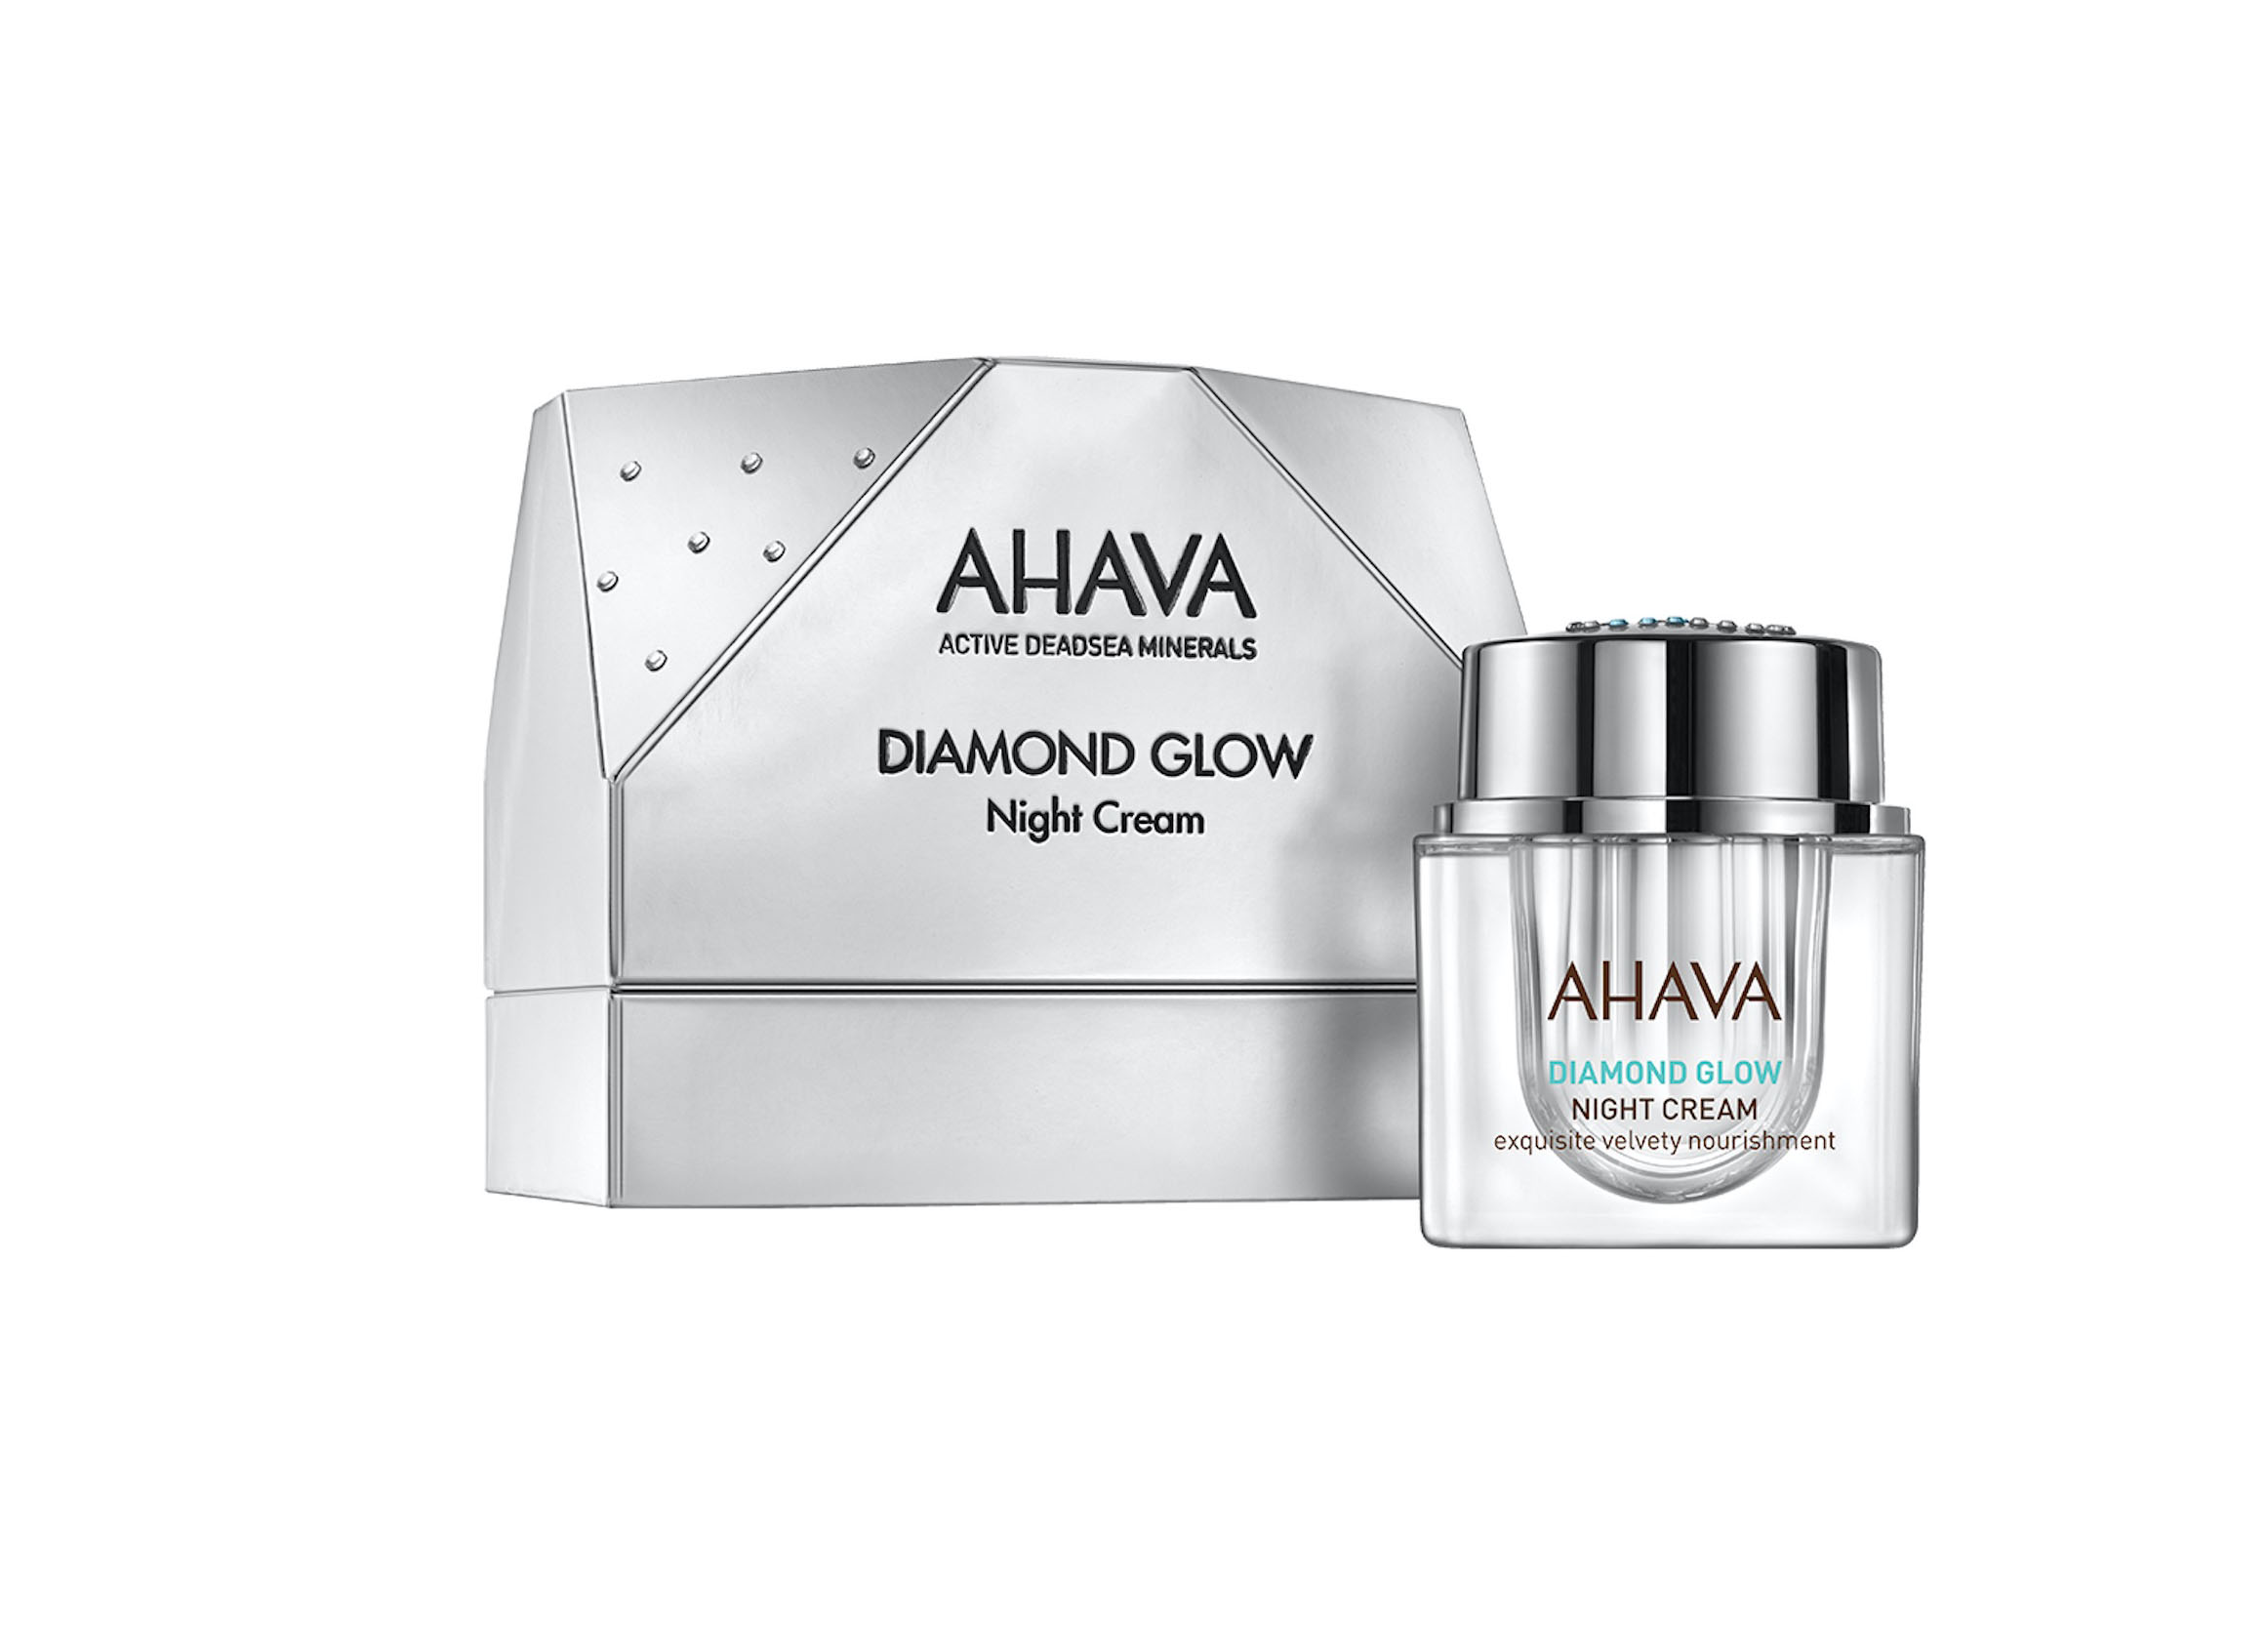 Ahava Night Cream